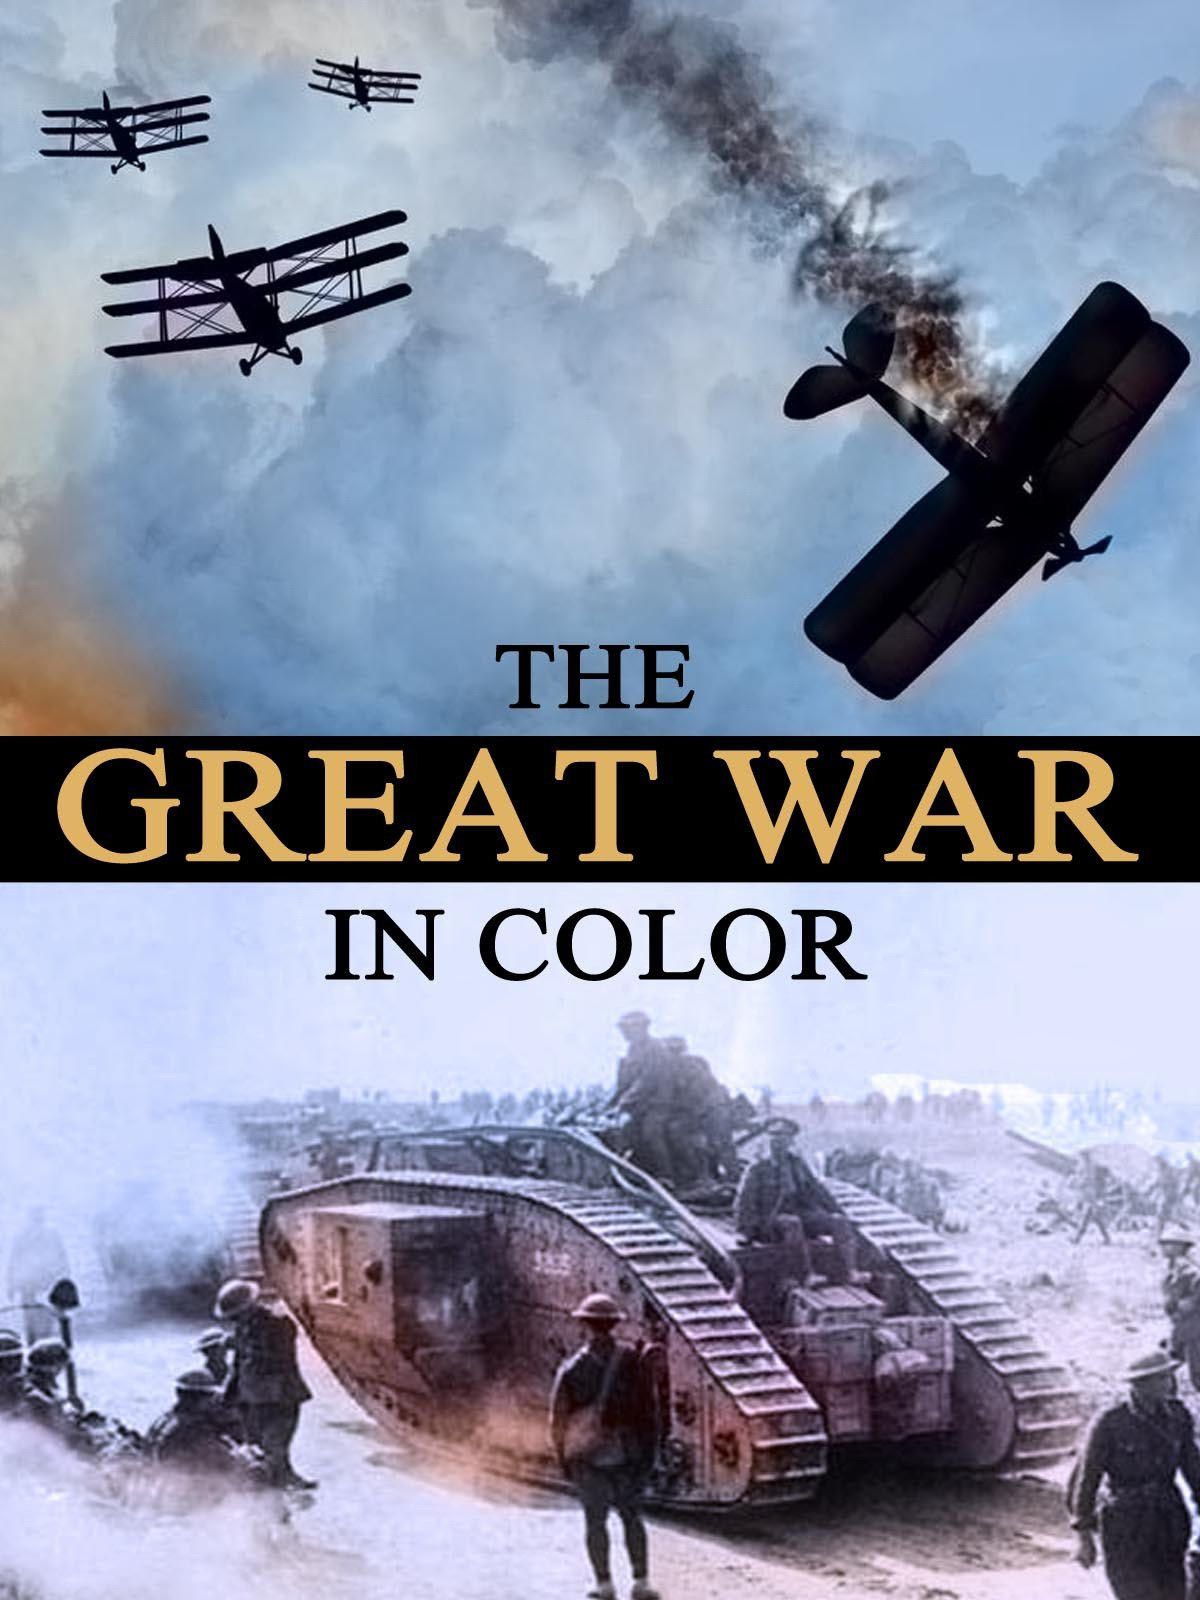 The Great War in Color